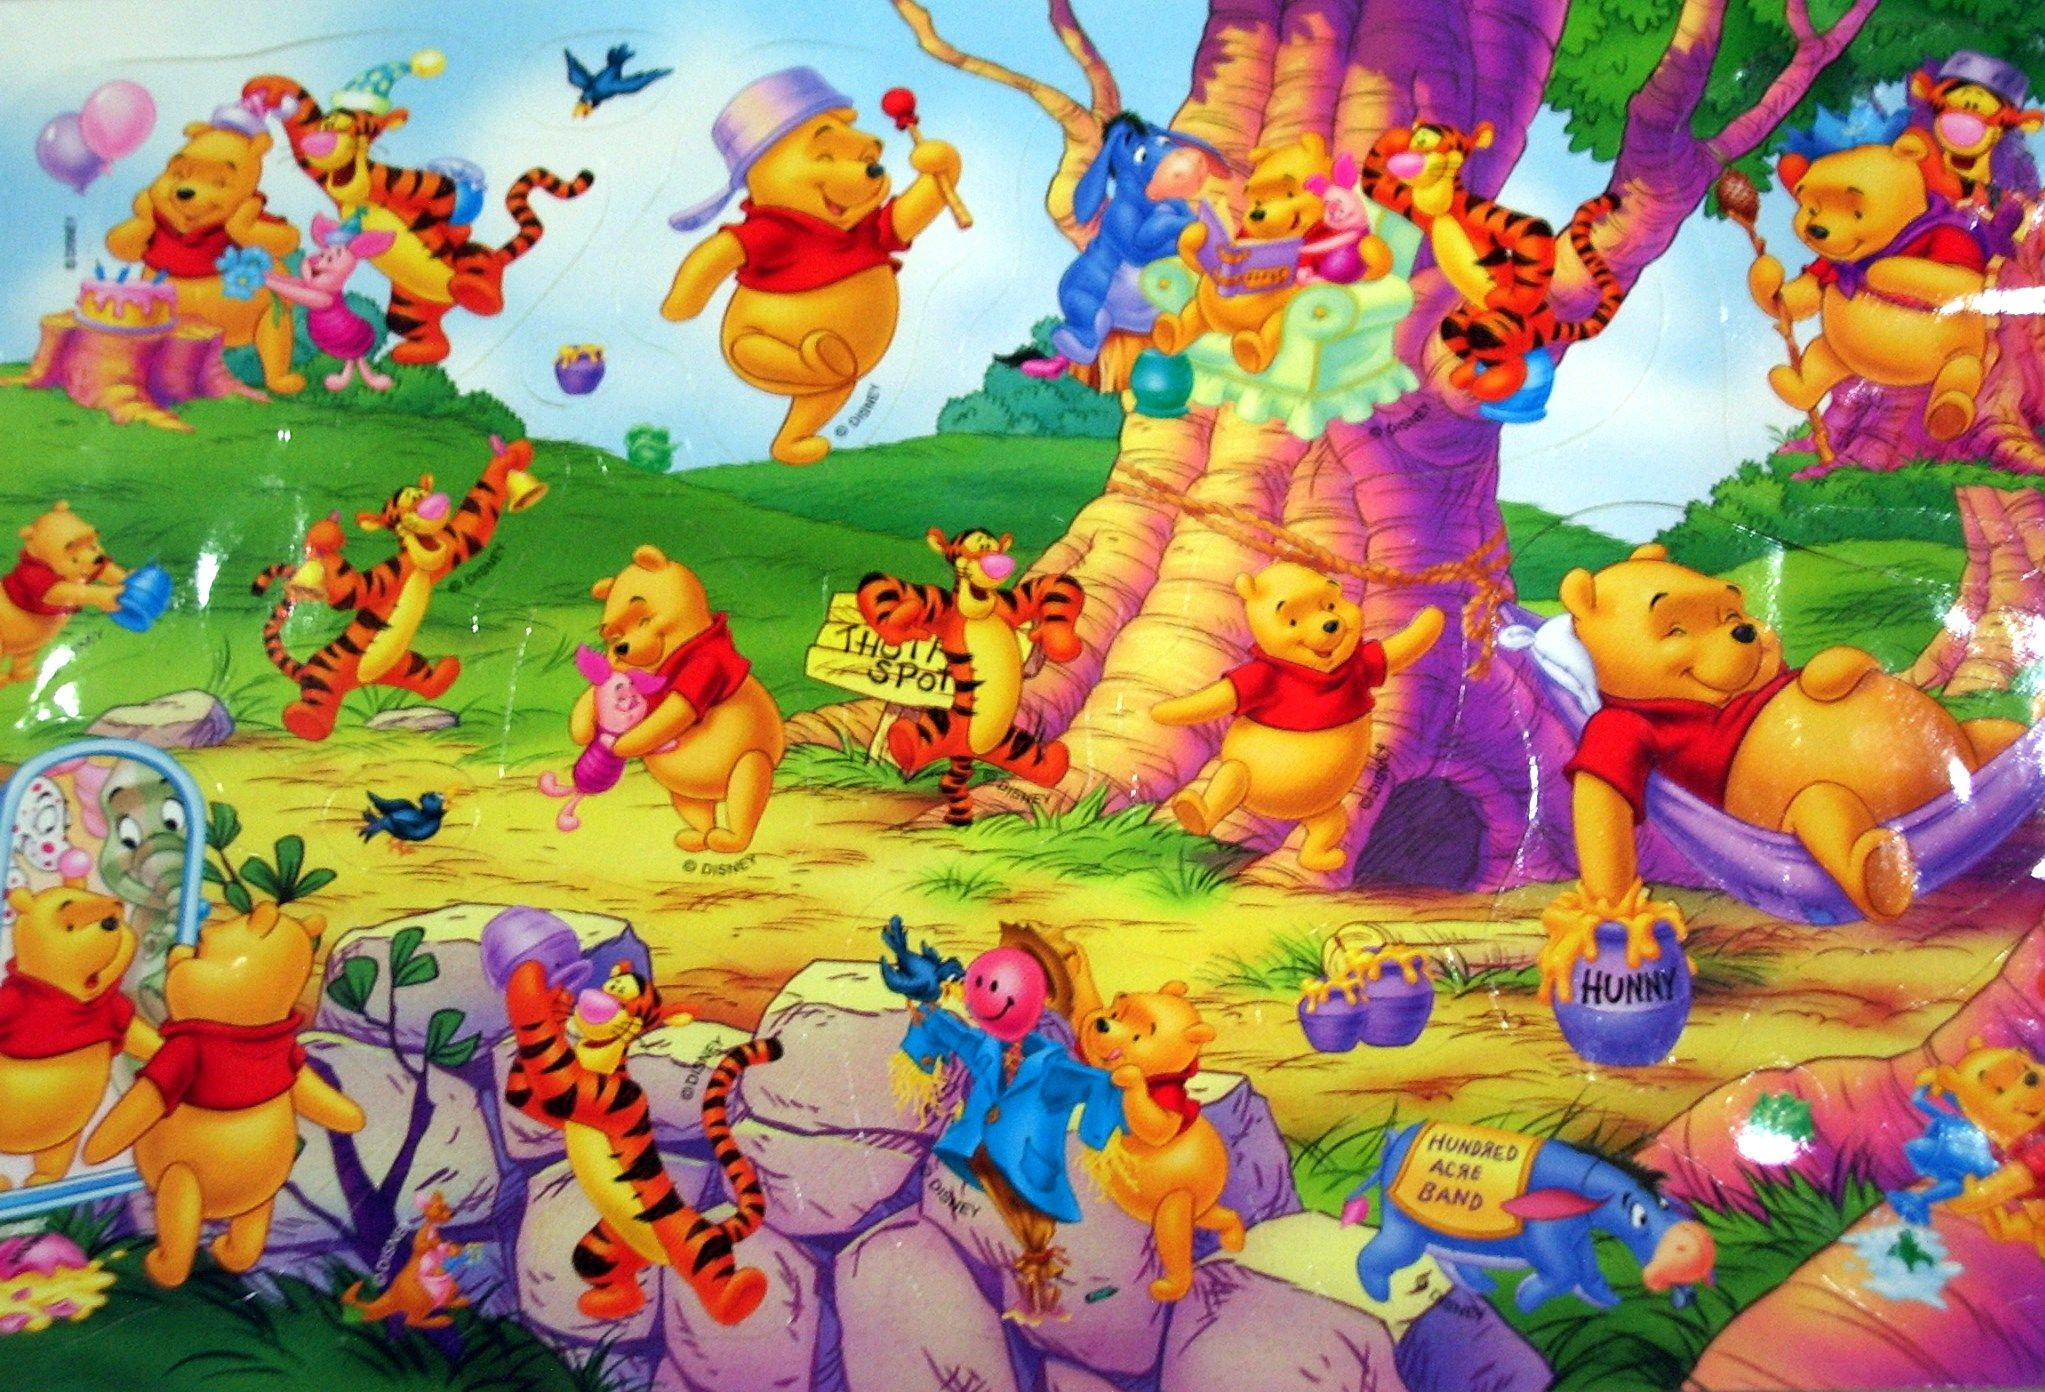 1869414 Winnie The Pooh Category Wallpapers Free Winnie The Pooh